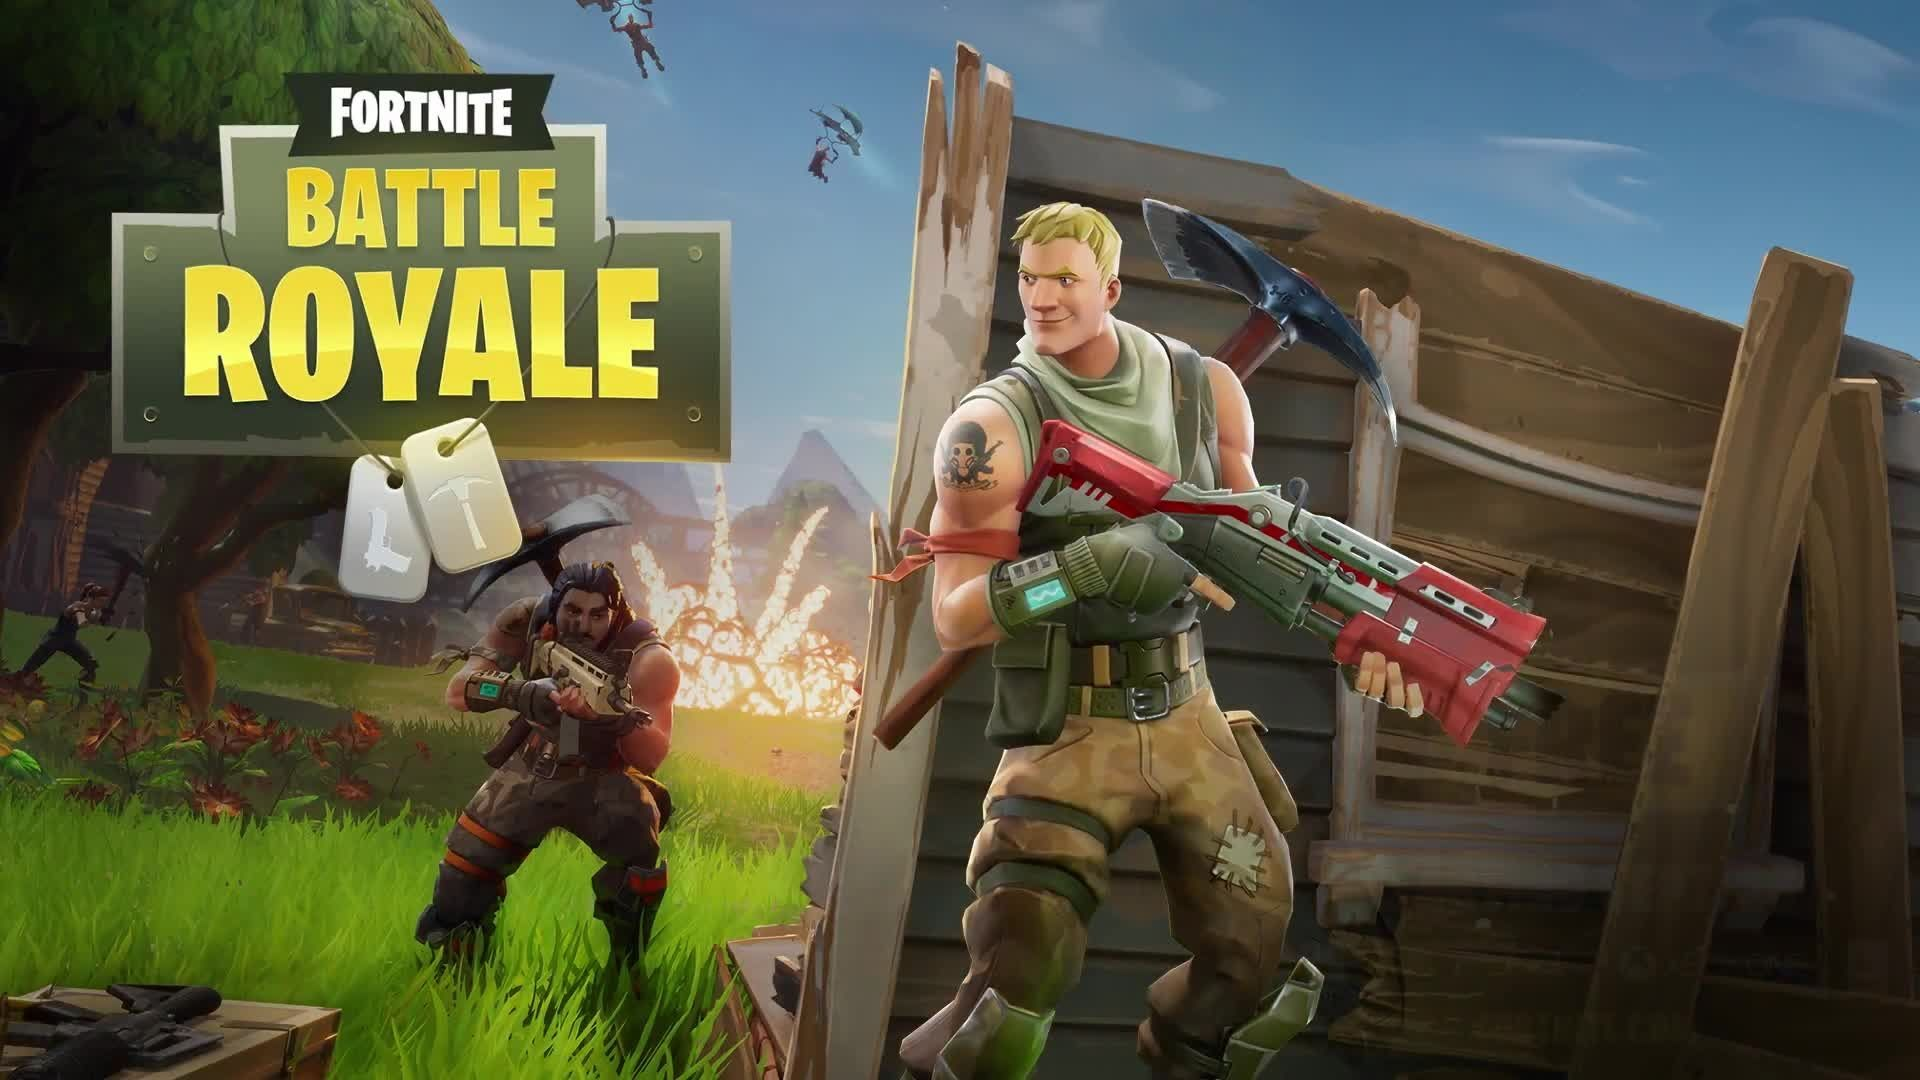 1920x1080 Fortnite Battle Royal HD Wallpapers